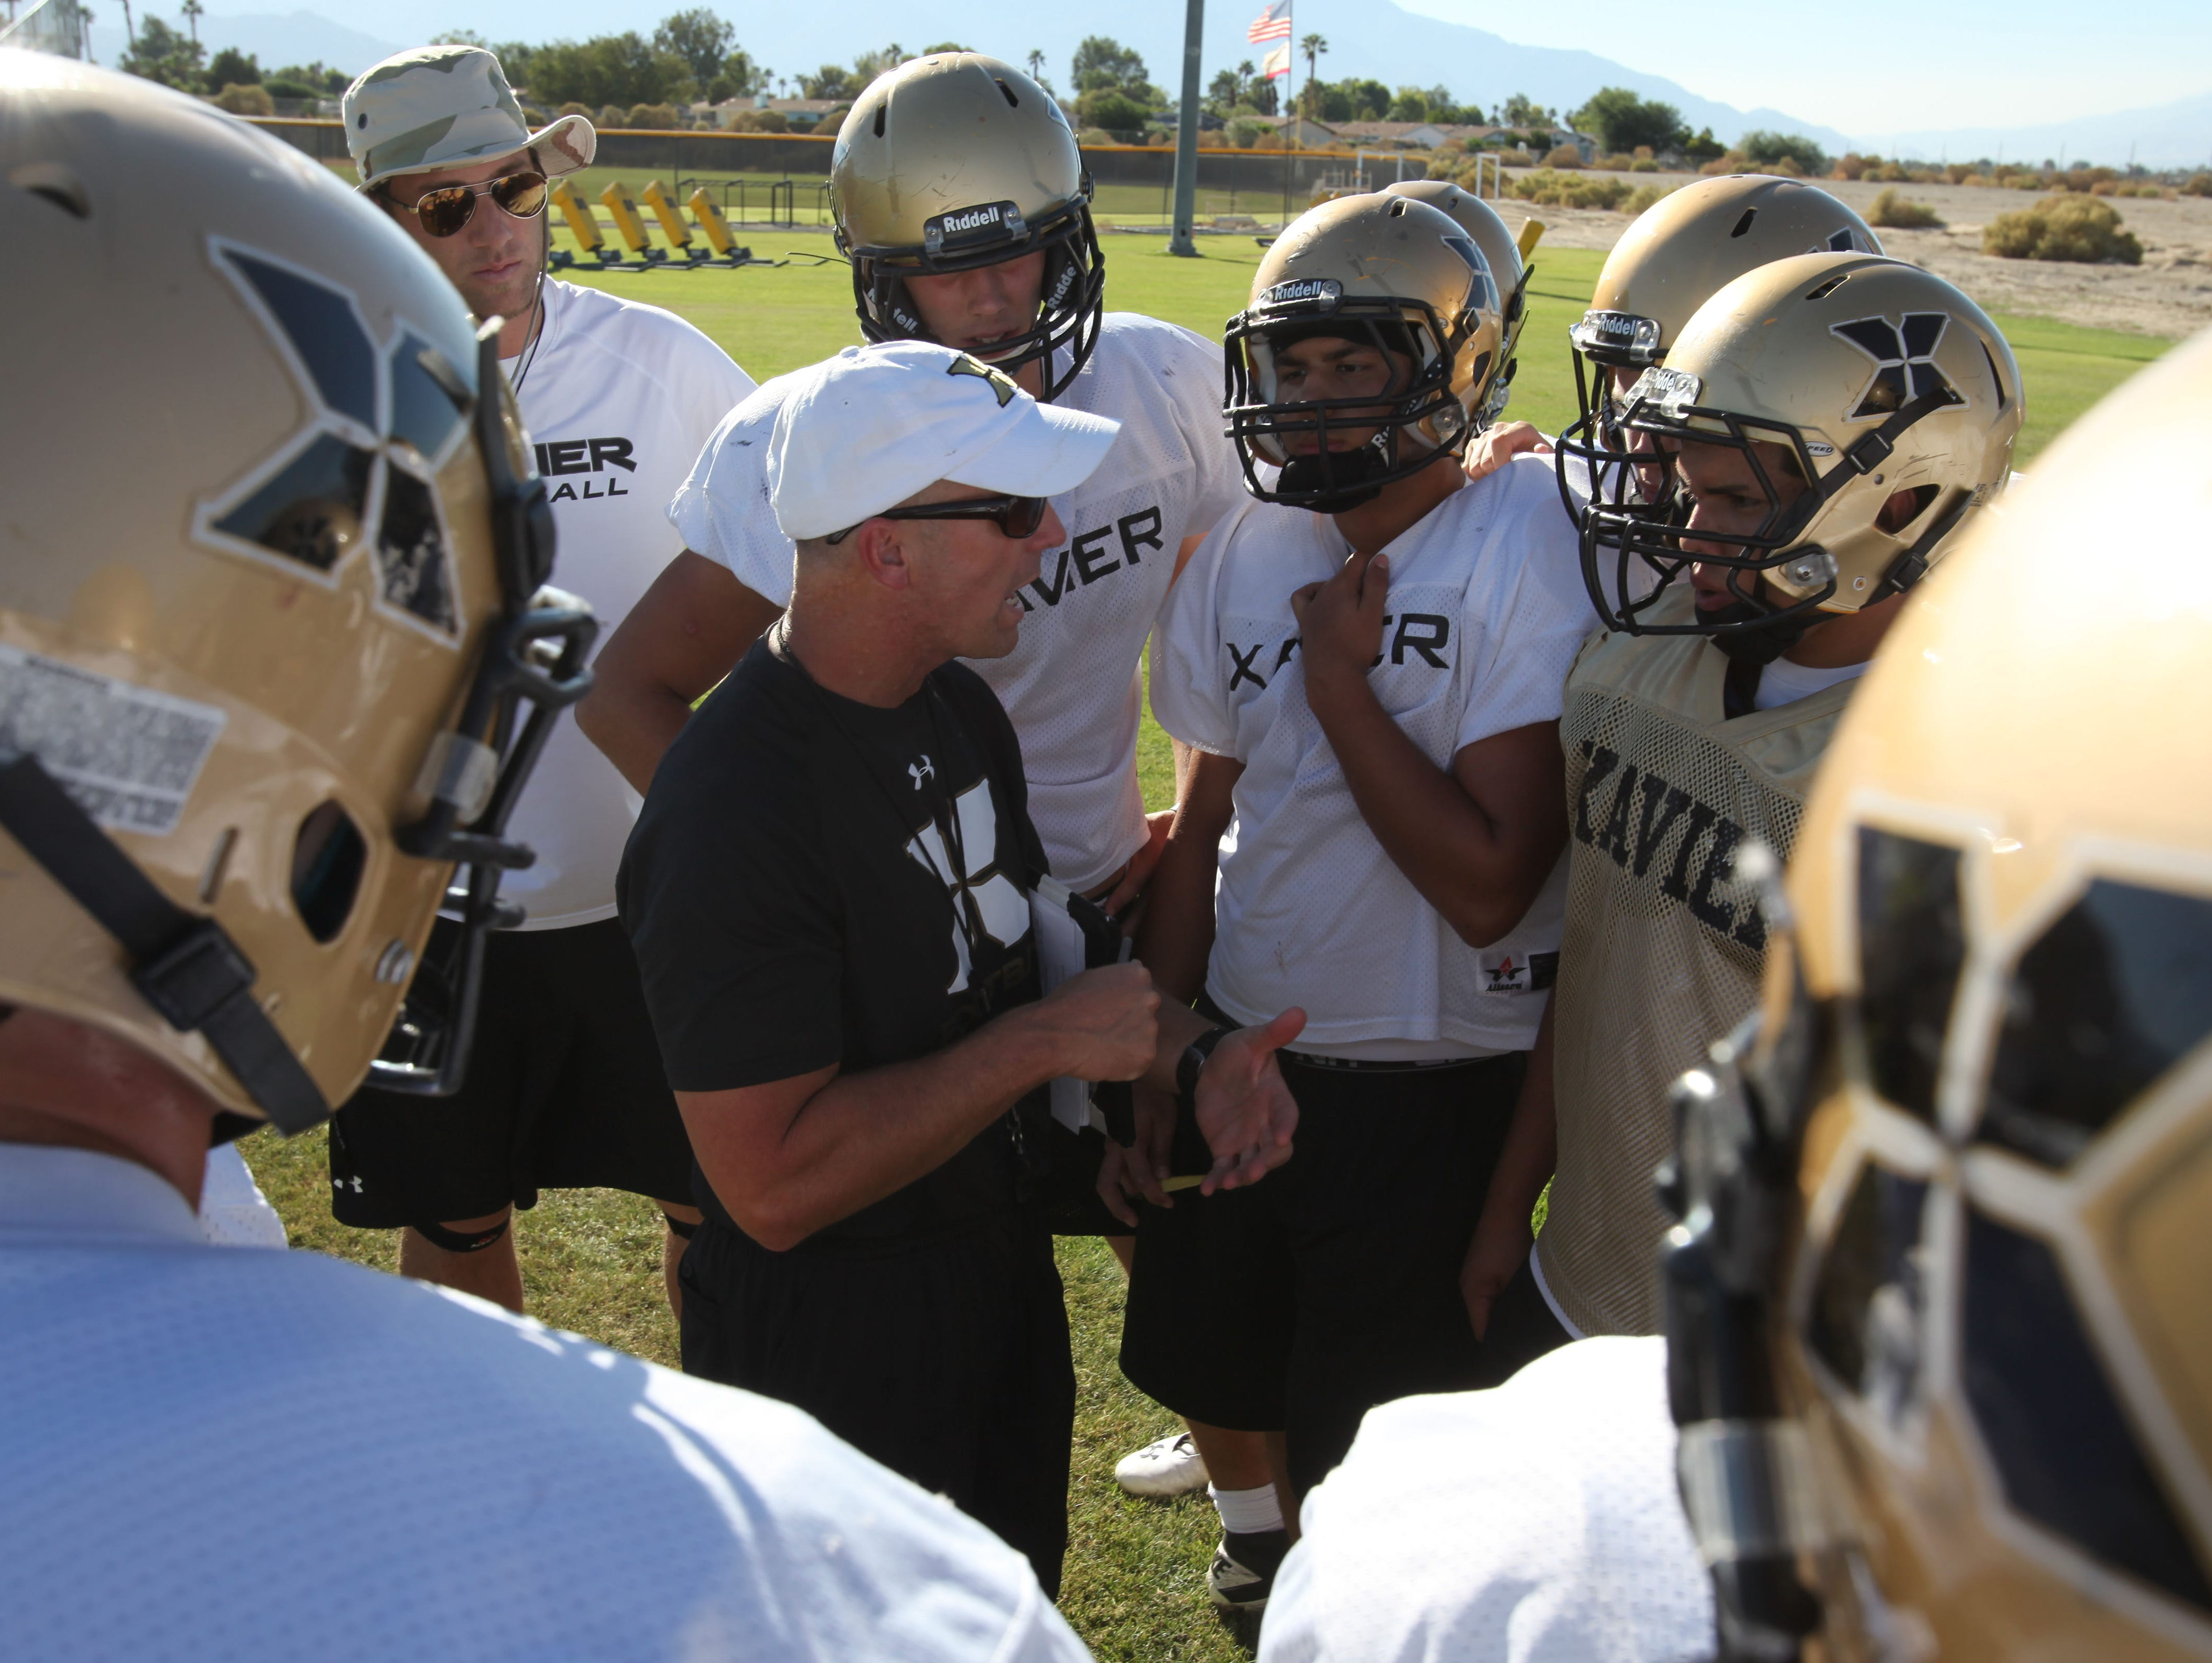 Bob Molyet was hired to be the Xavier Prep head football coach back in 2013, but he's moving on to be an athletic director in Texas.